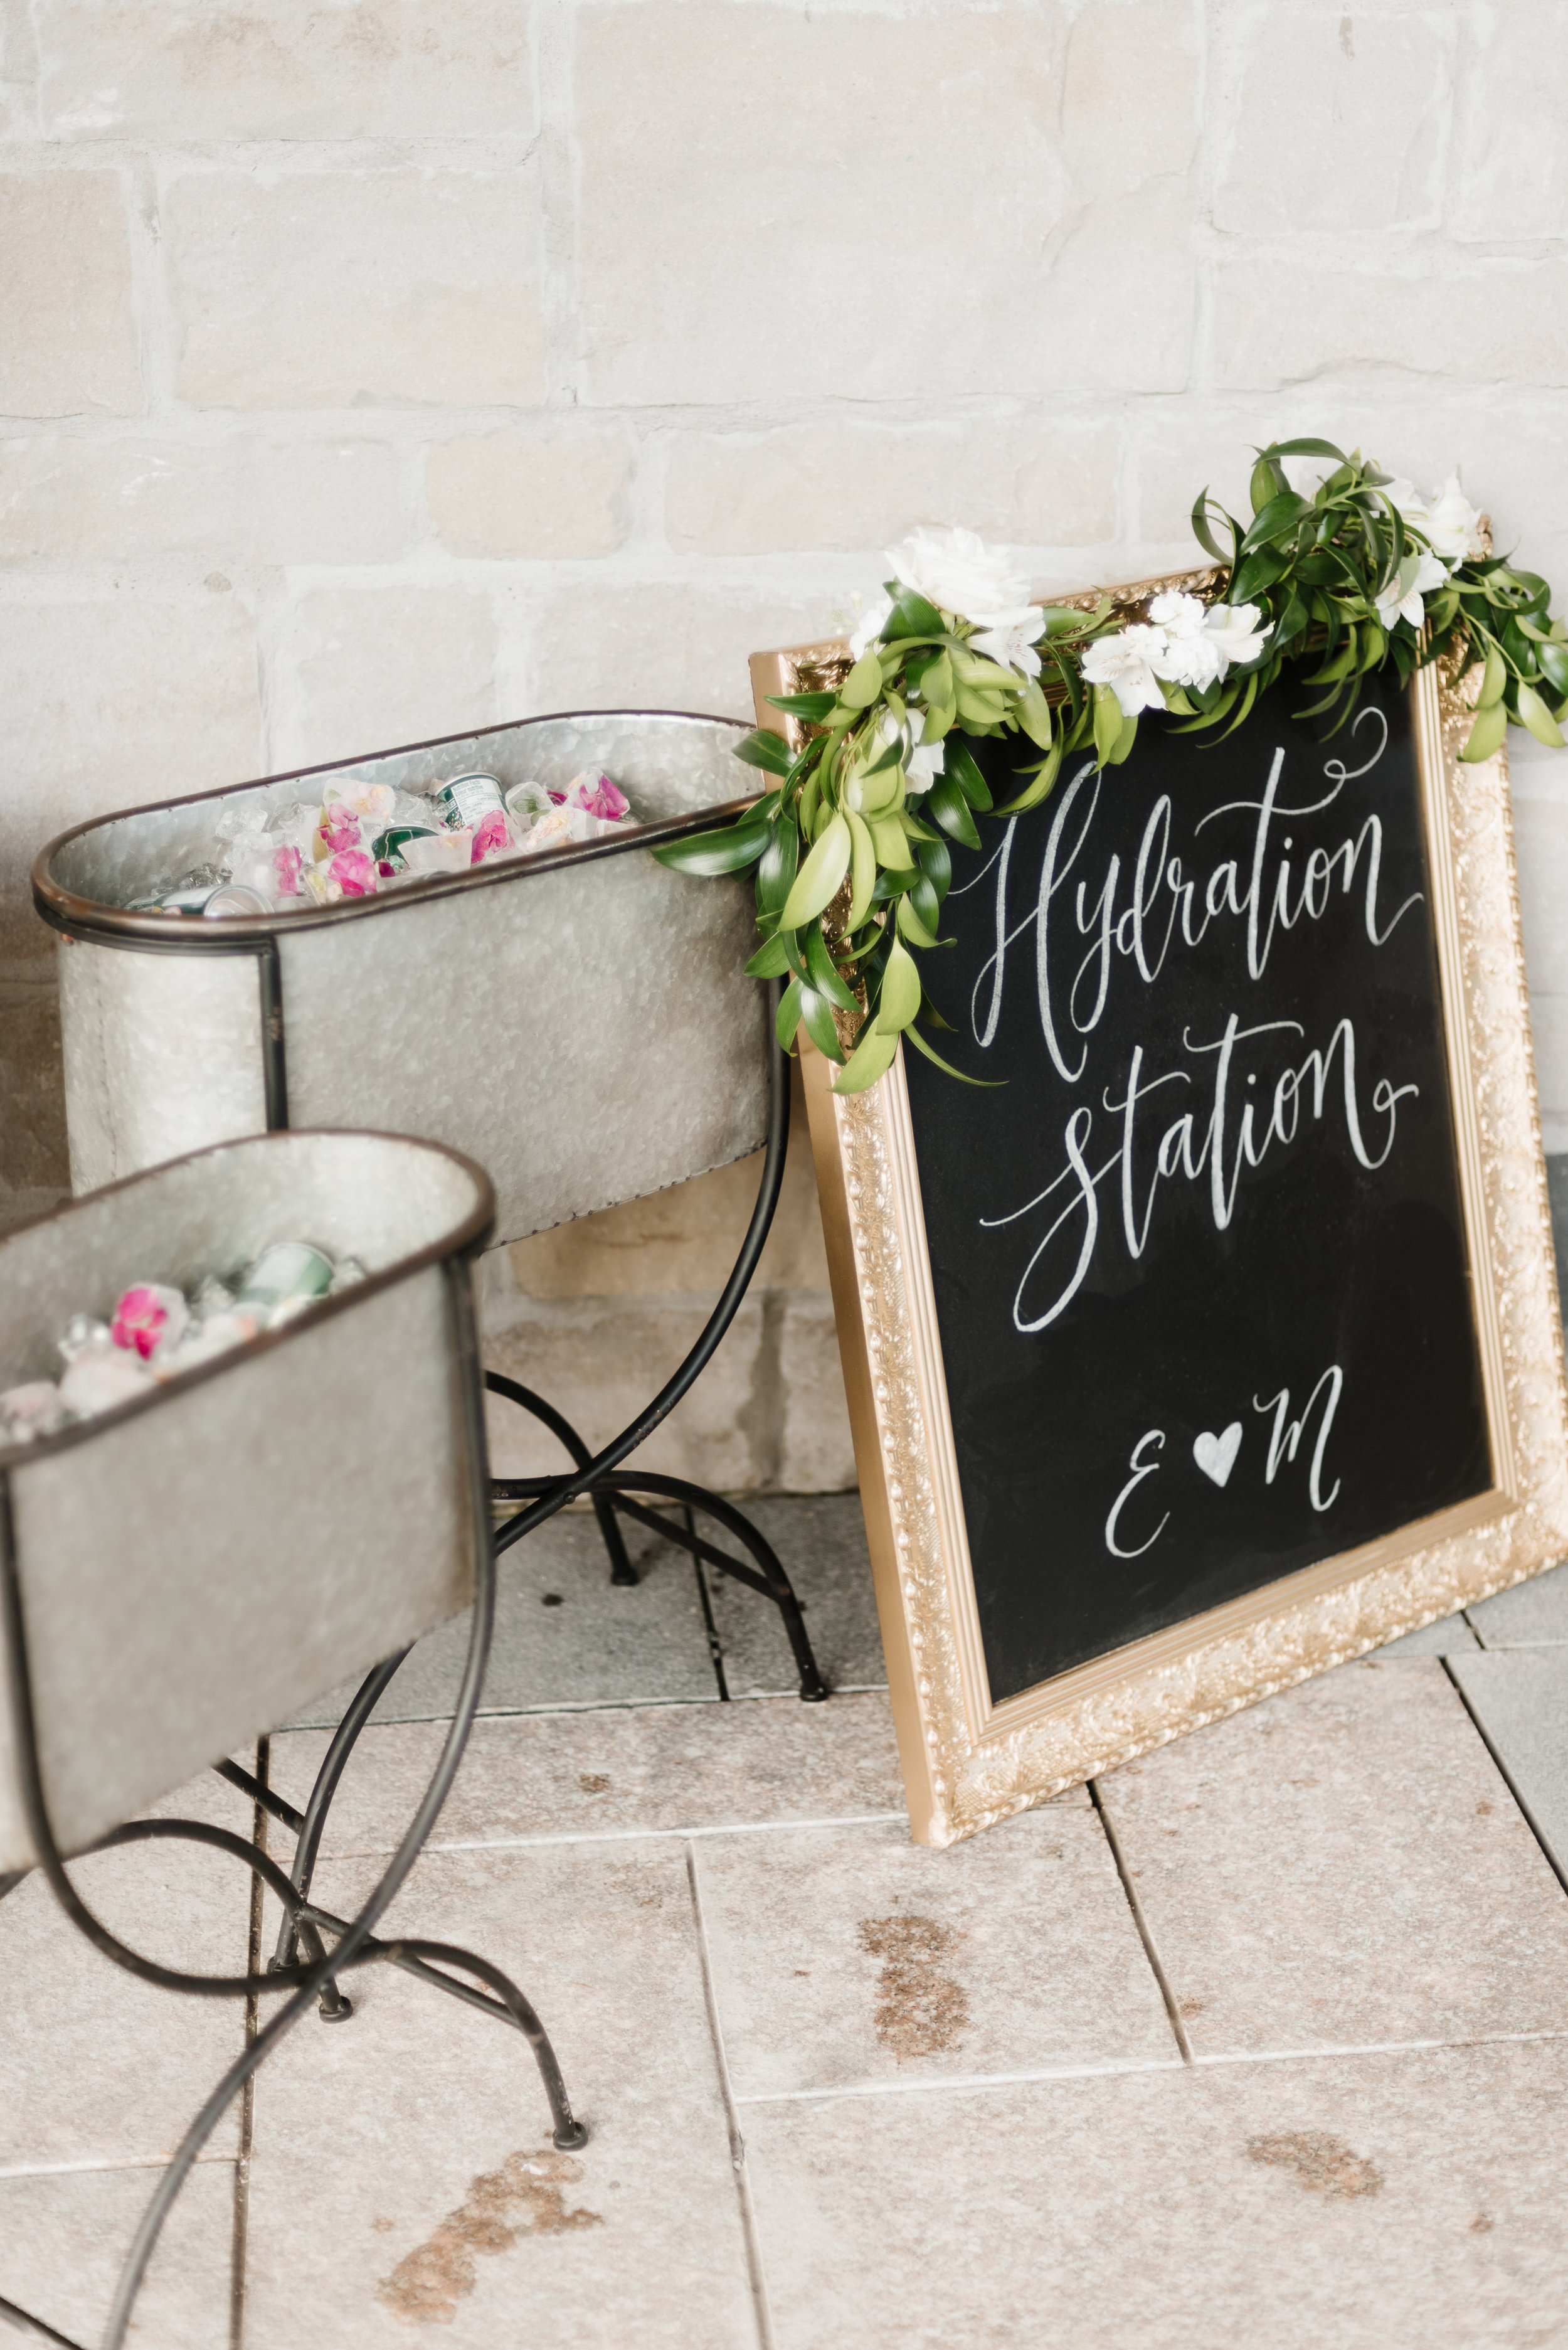 Water Station!  If you're planning a summer wedding, especially if it will be outdoors, you'll need something to keep your guests cool and refreshed. A drink station can do exactly that! We added custom signage and flower petal ice cubes for an added touch!  Photo:  Mango Studios   Calligraphy:  The Lettering Studio